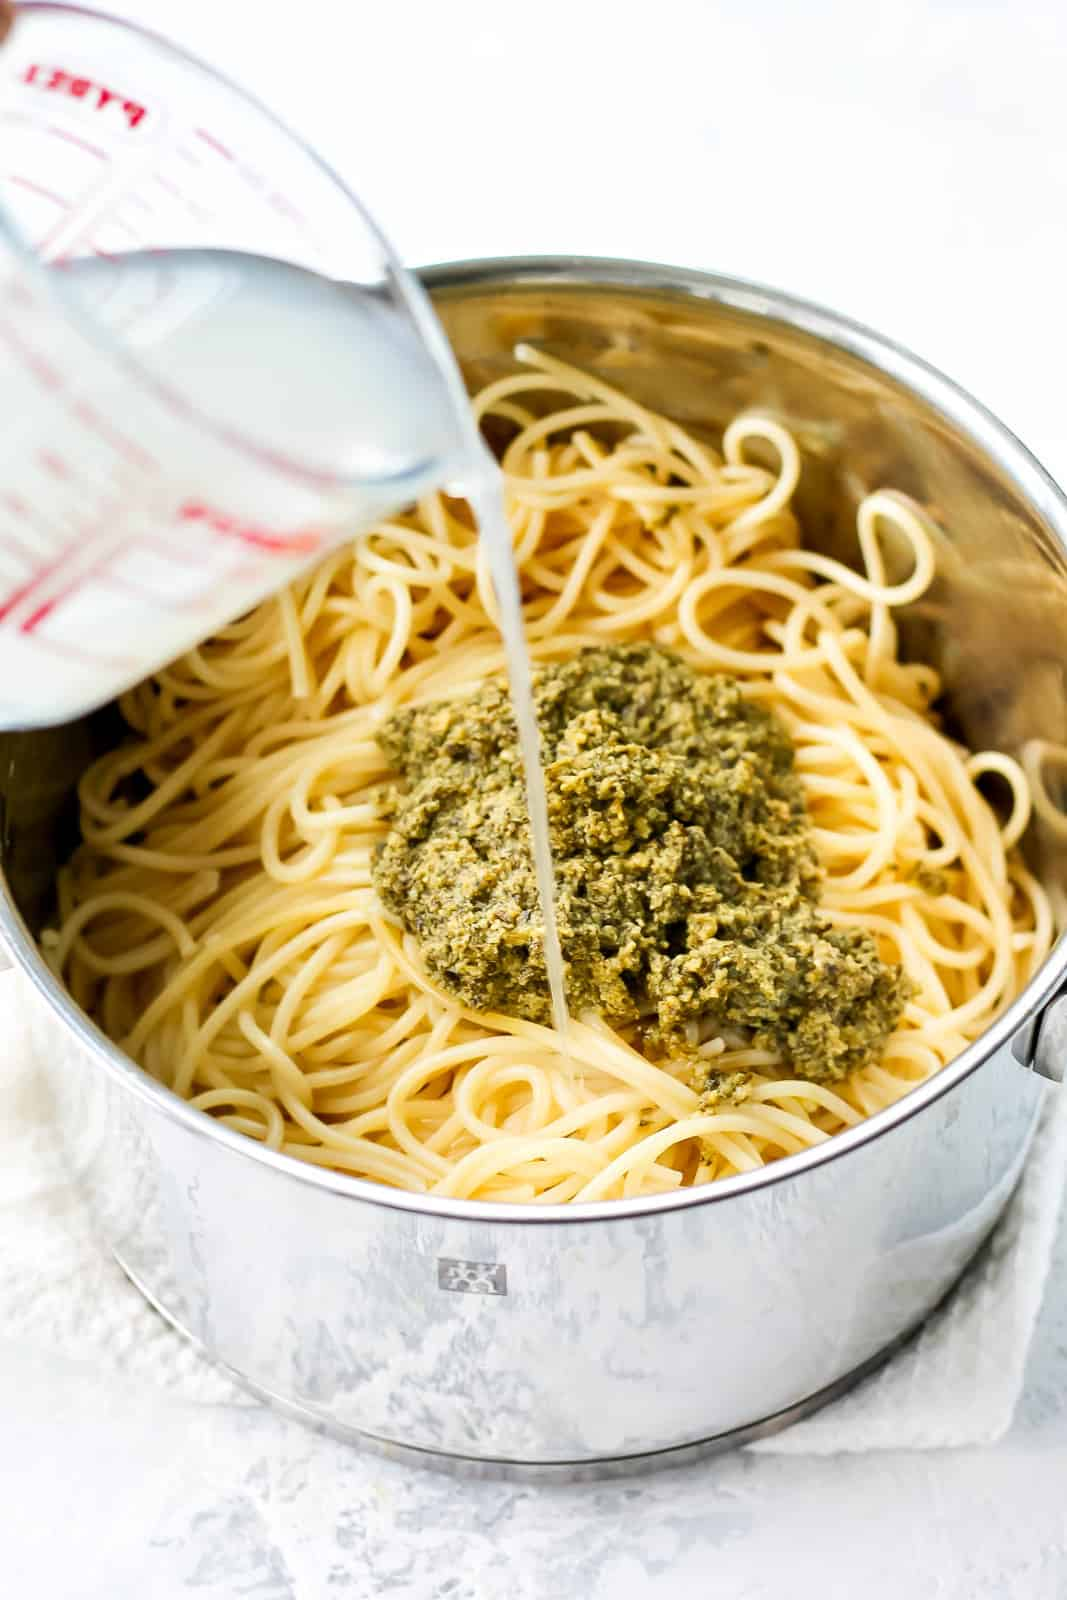 pasta water being poured into a pot of spaghetti and pesto